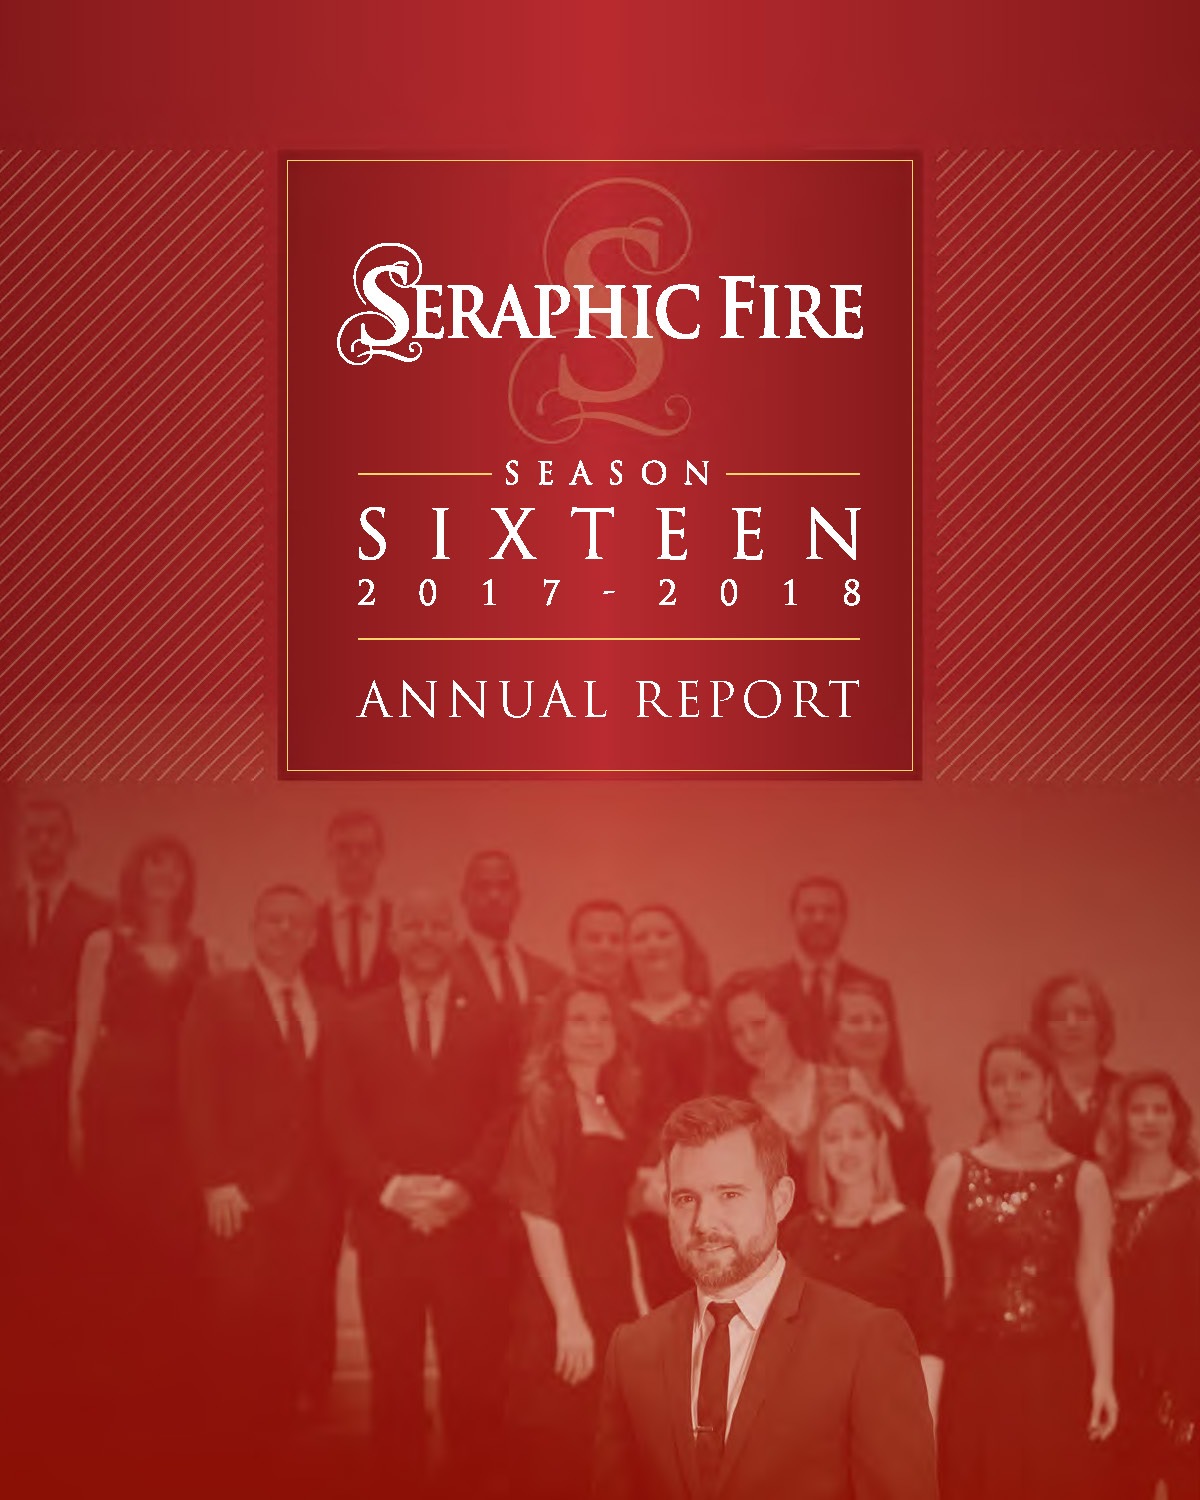 Seraphic Fire - Annual Report 2017-2018